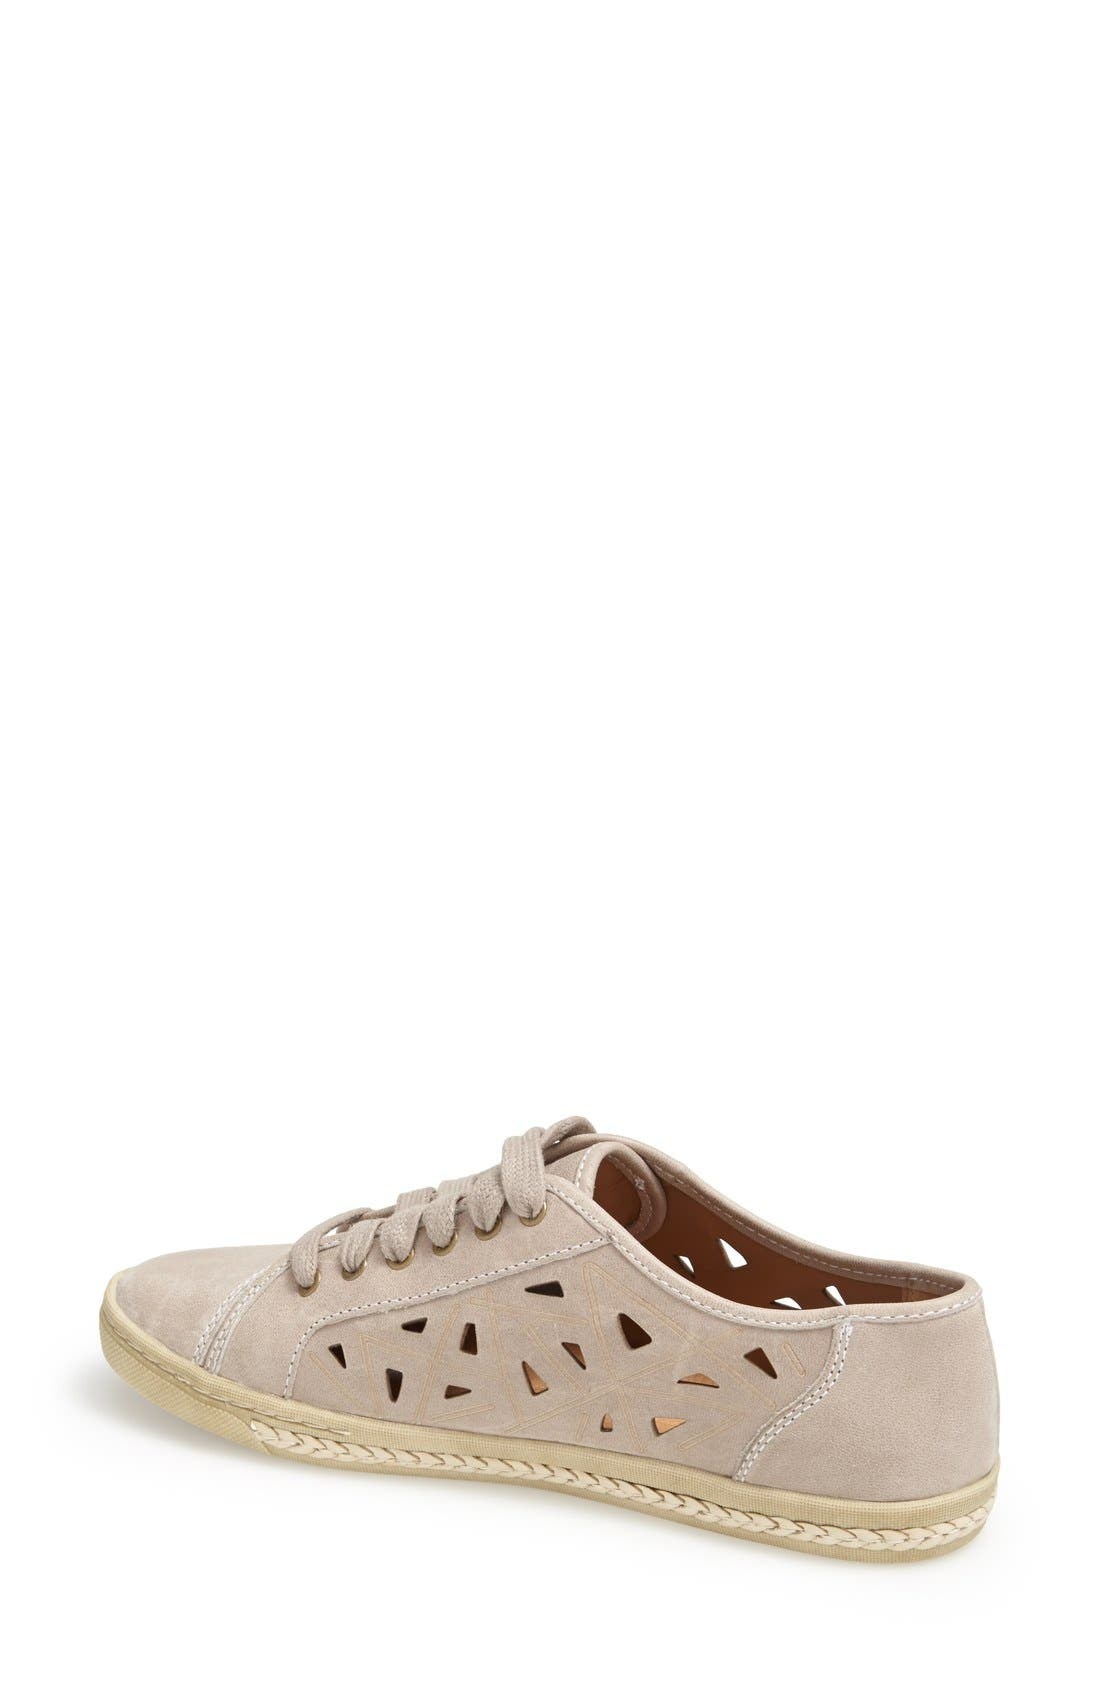 Alternate Image 2  - Earth 'Pomelo' Perforated Leather Sneaker (Women)